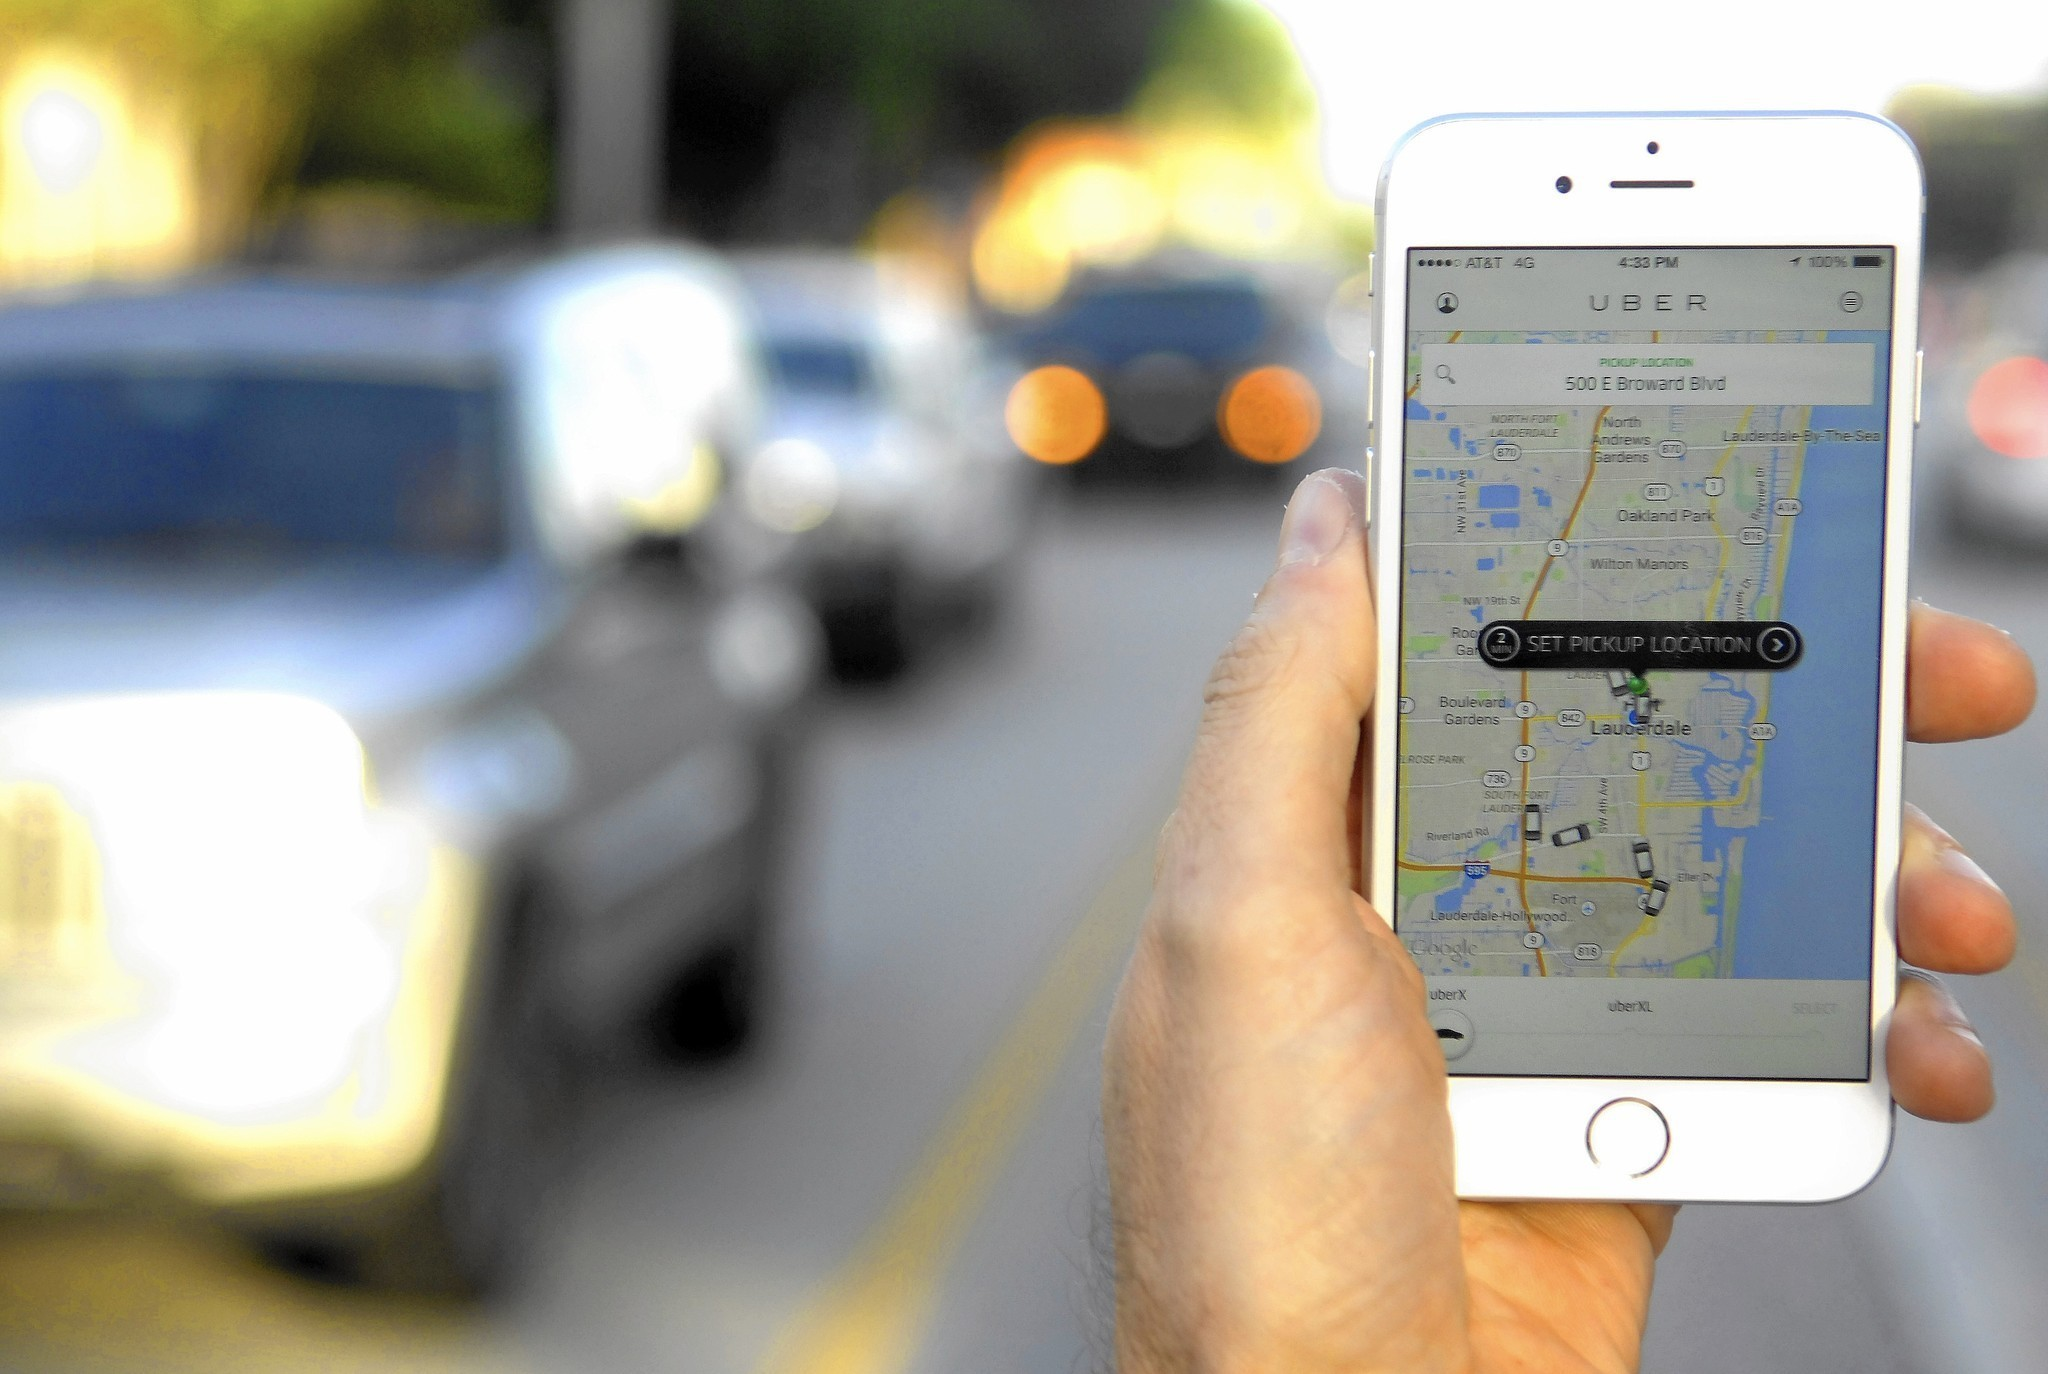 Fate of Uber in Palm Beach County to be determined August 18, 2015